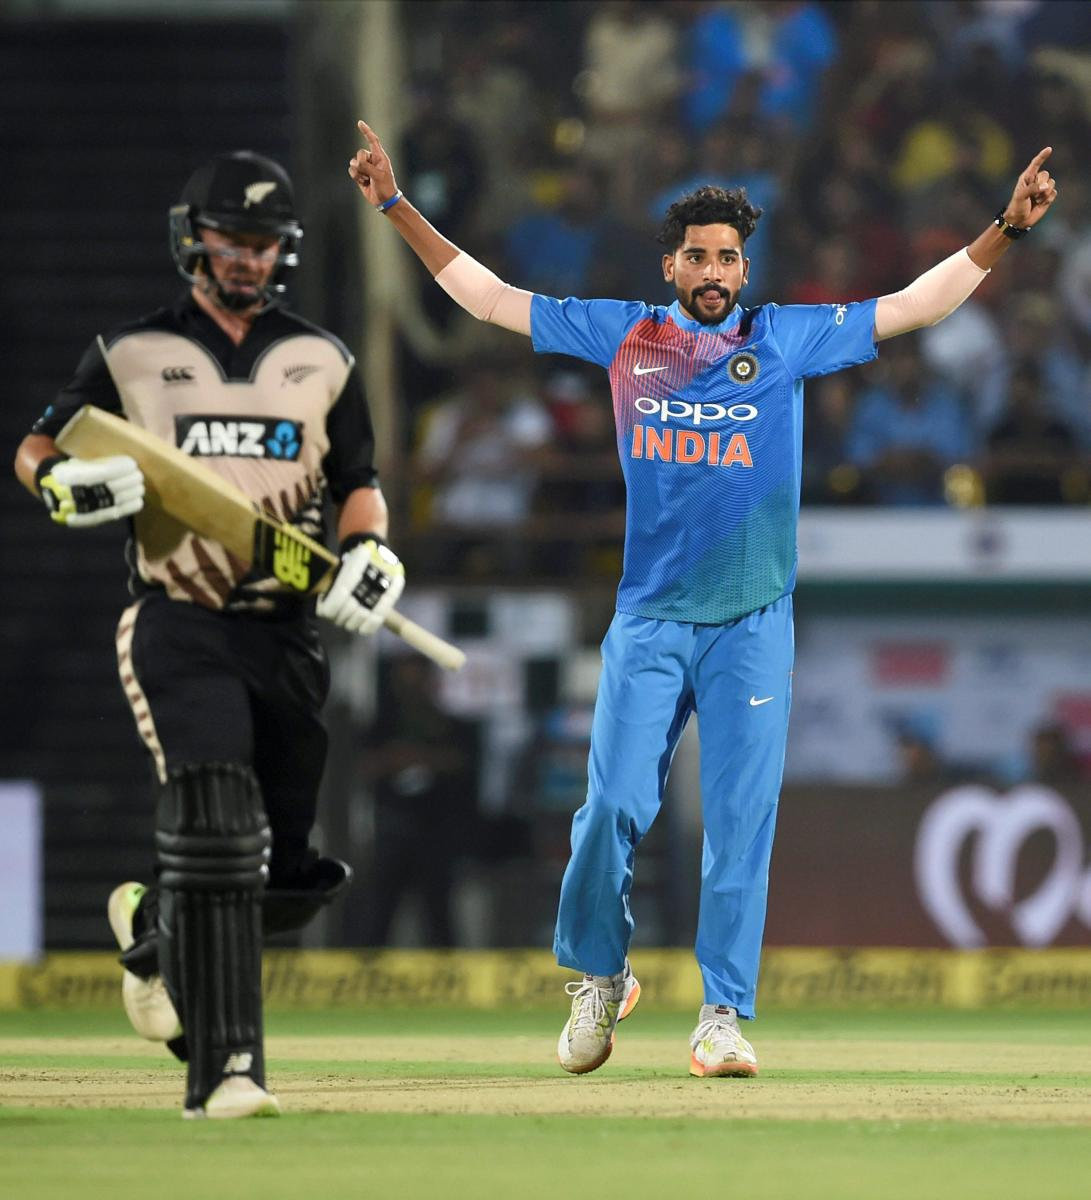 Bumrah backs rookie pacer Siraj to do well in future